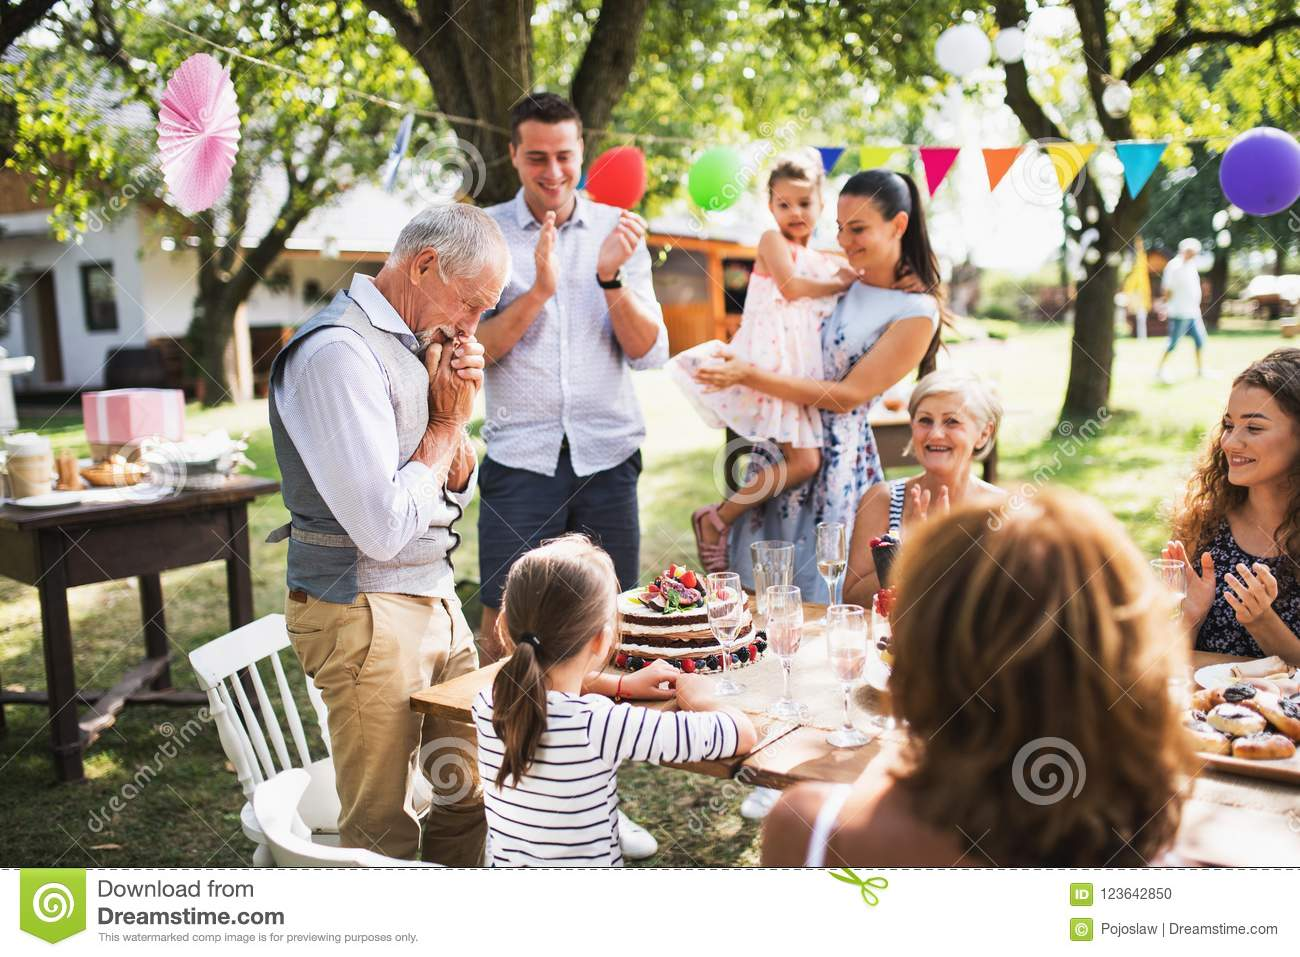 A senior man with an extended family looking at the birthday cake, crying.